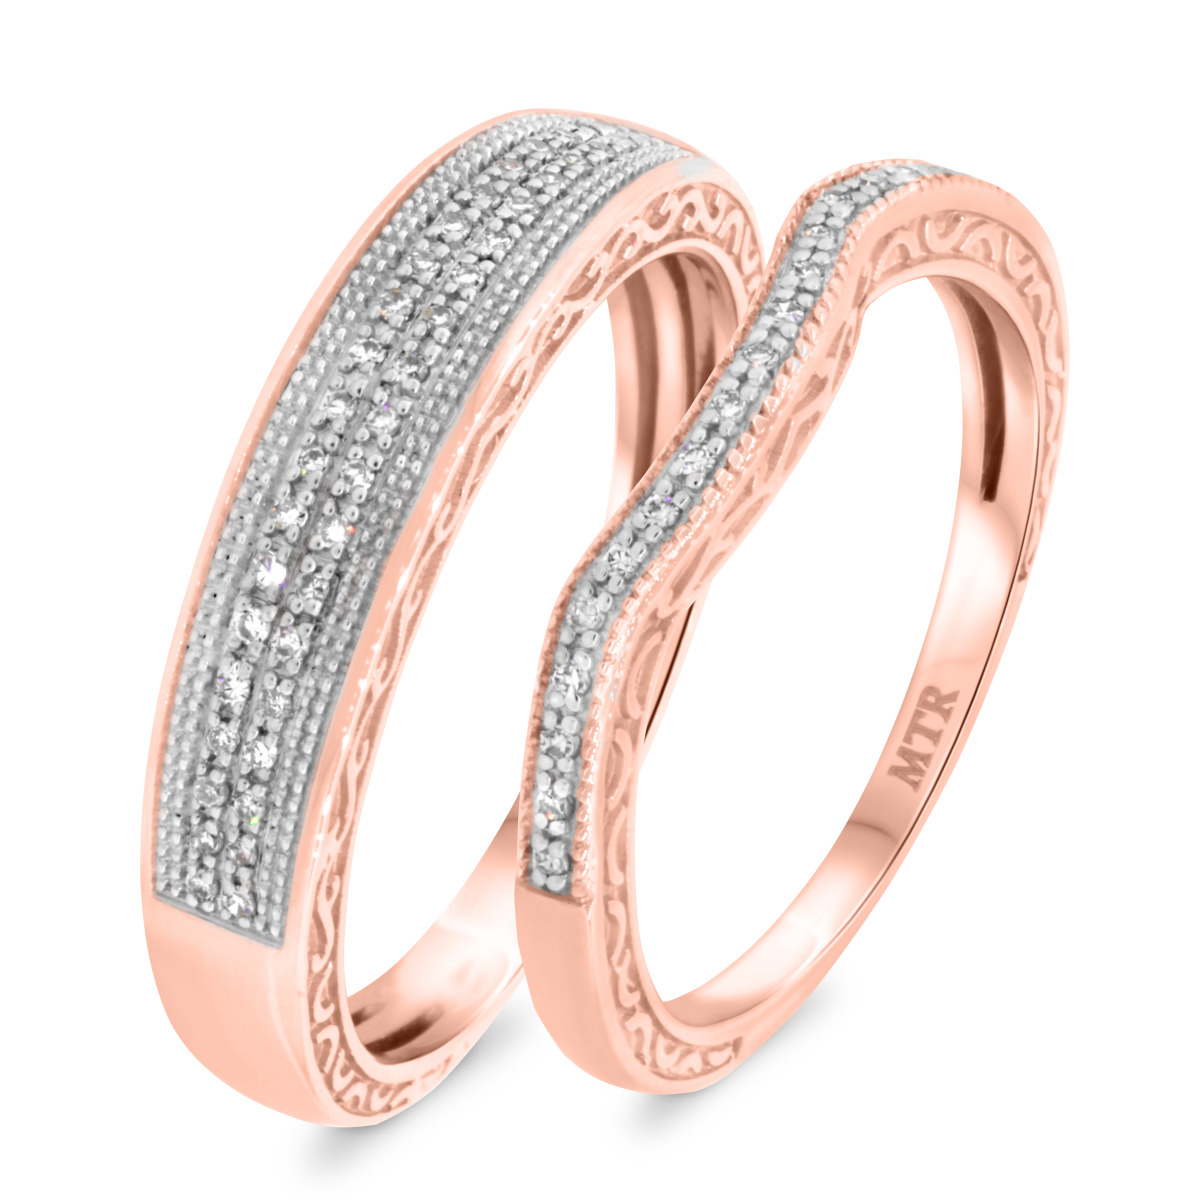 1/4 Carat T.W. Diamond Matching Wedding Band Set 10K Rose Gold